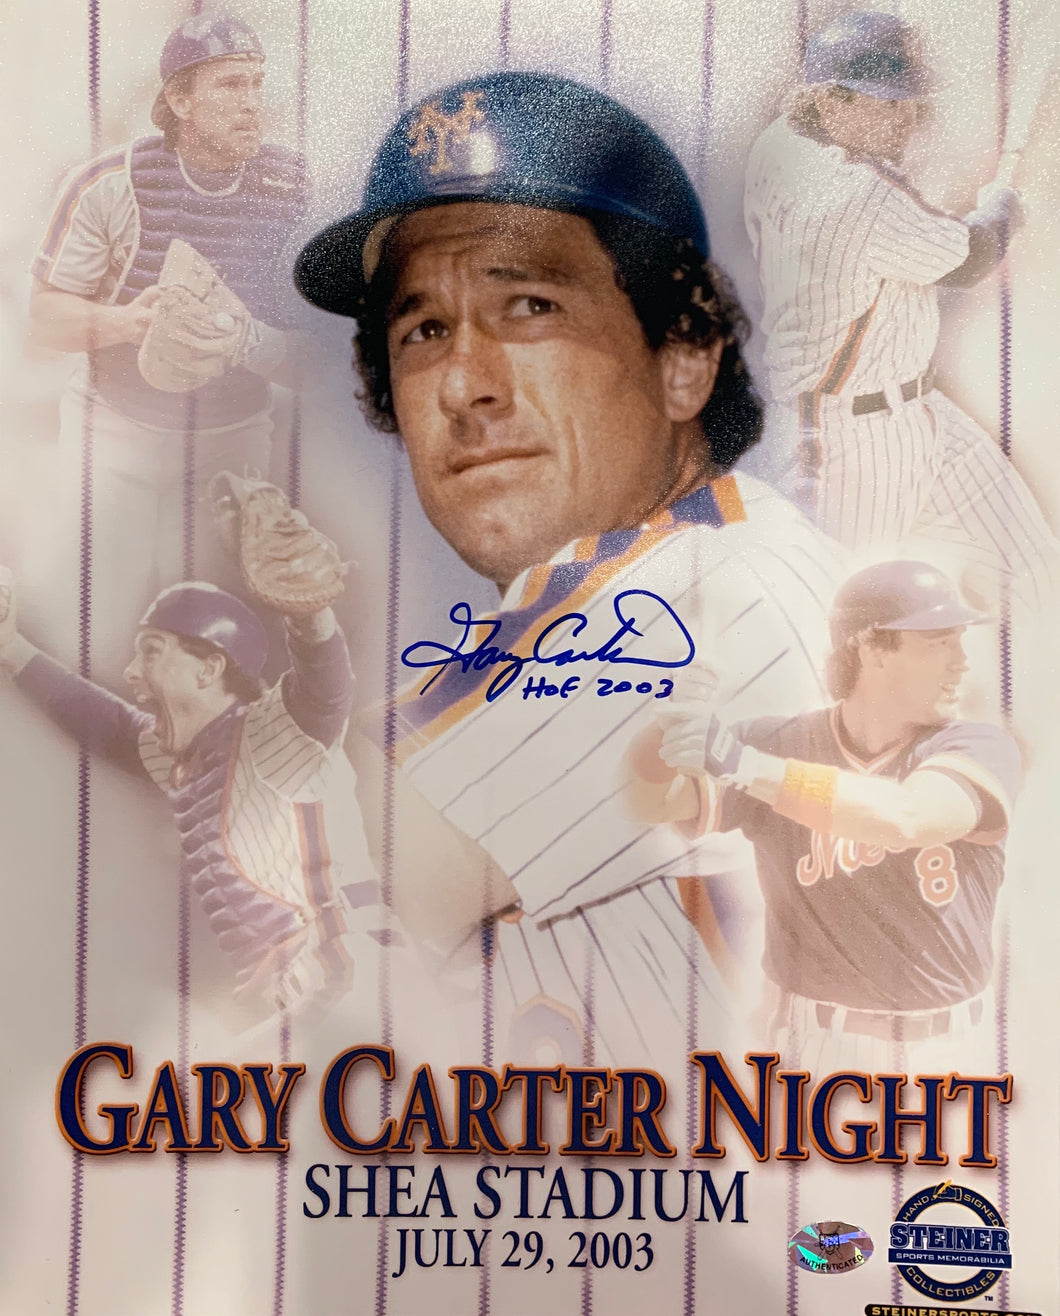 Gary Carter Autographed